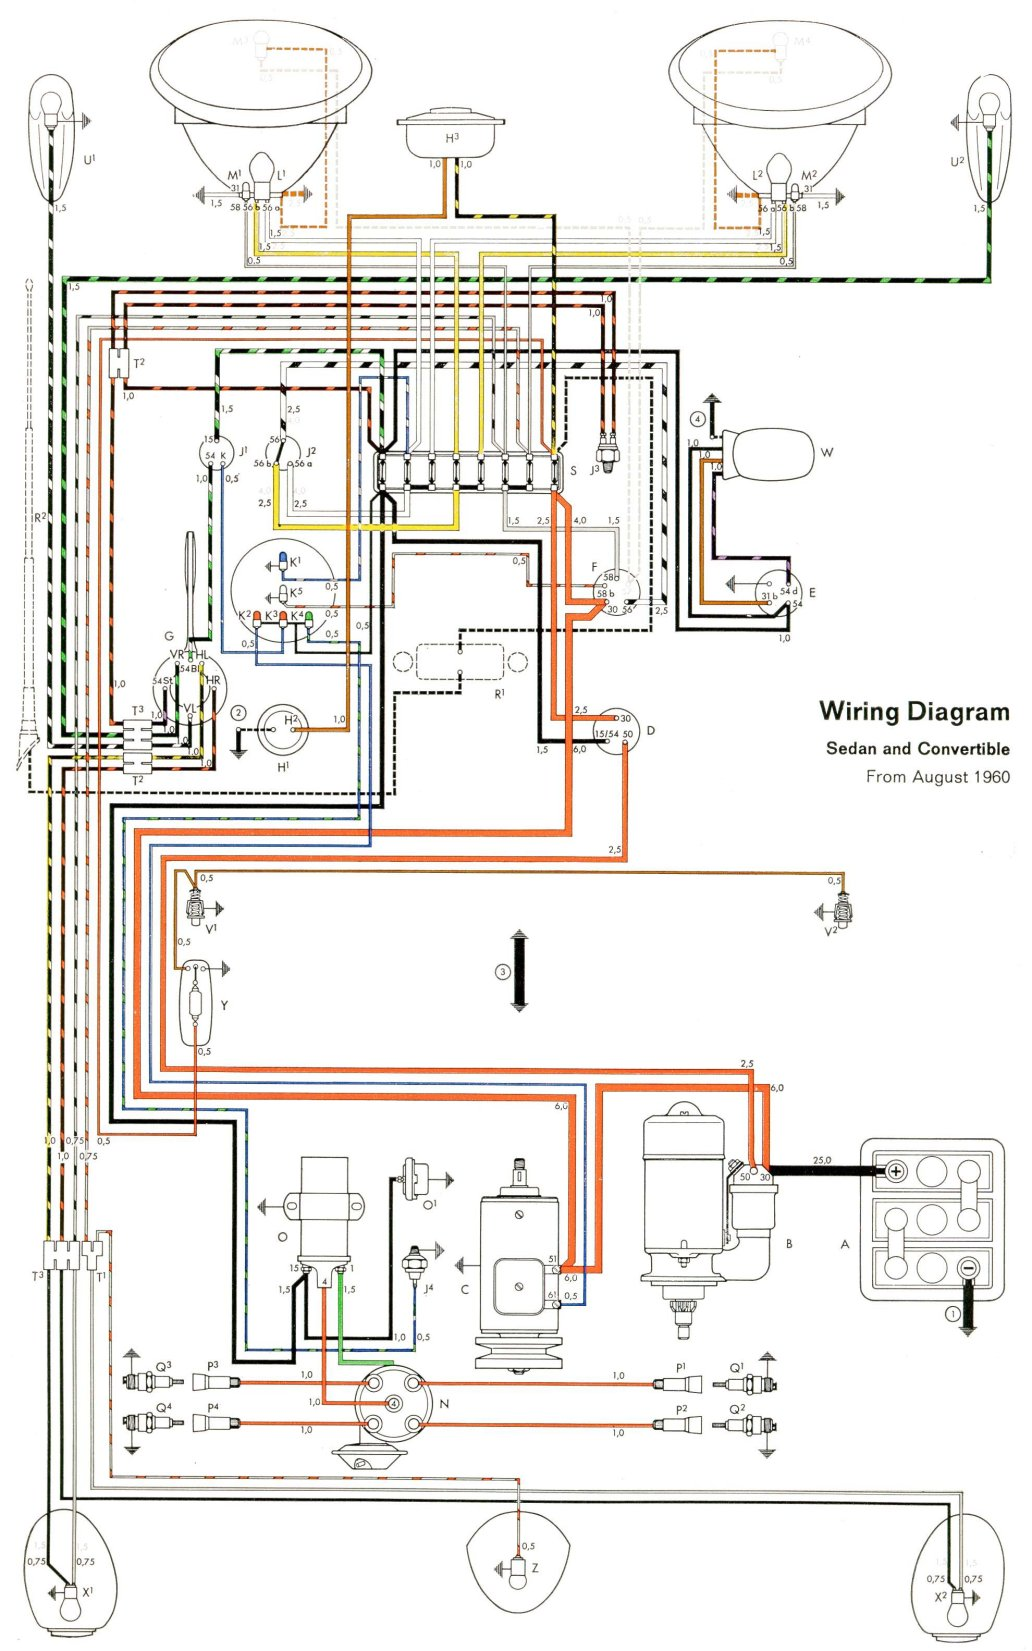 thesamba.com :: type 1 wiring diagrams vw beetle generator wiring diagram thesamba gallery vw beetle ignition wiring diagram